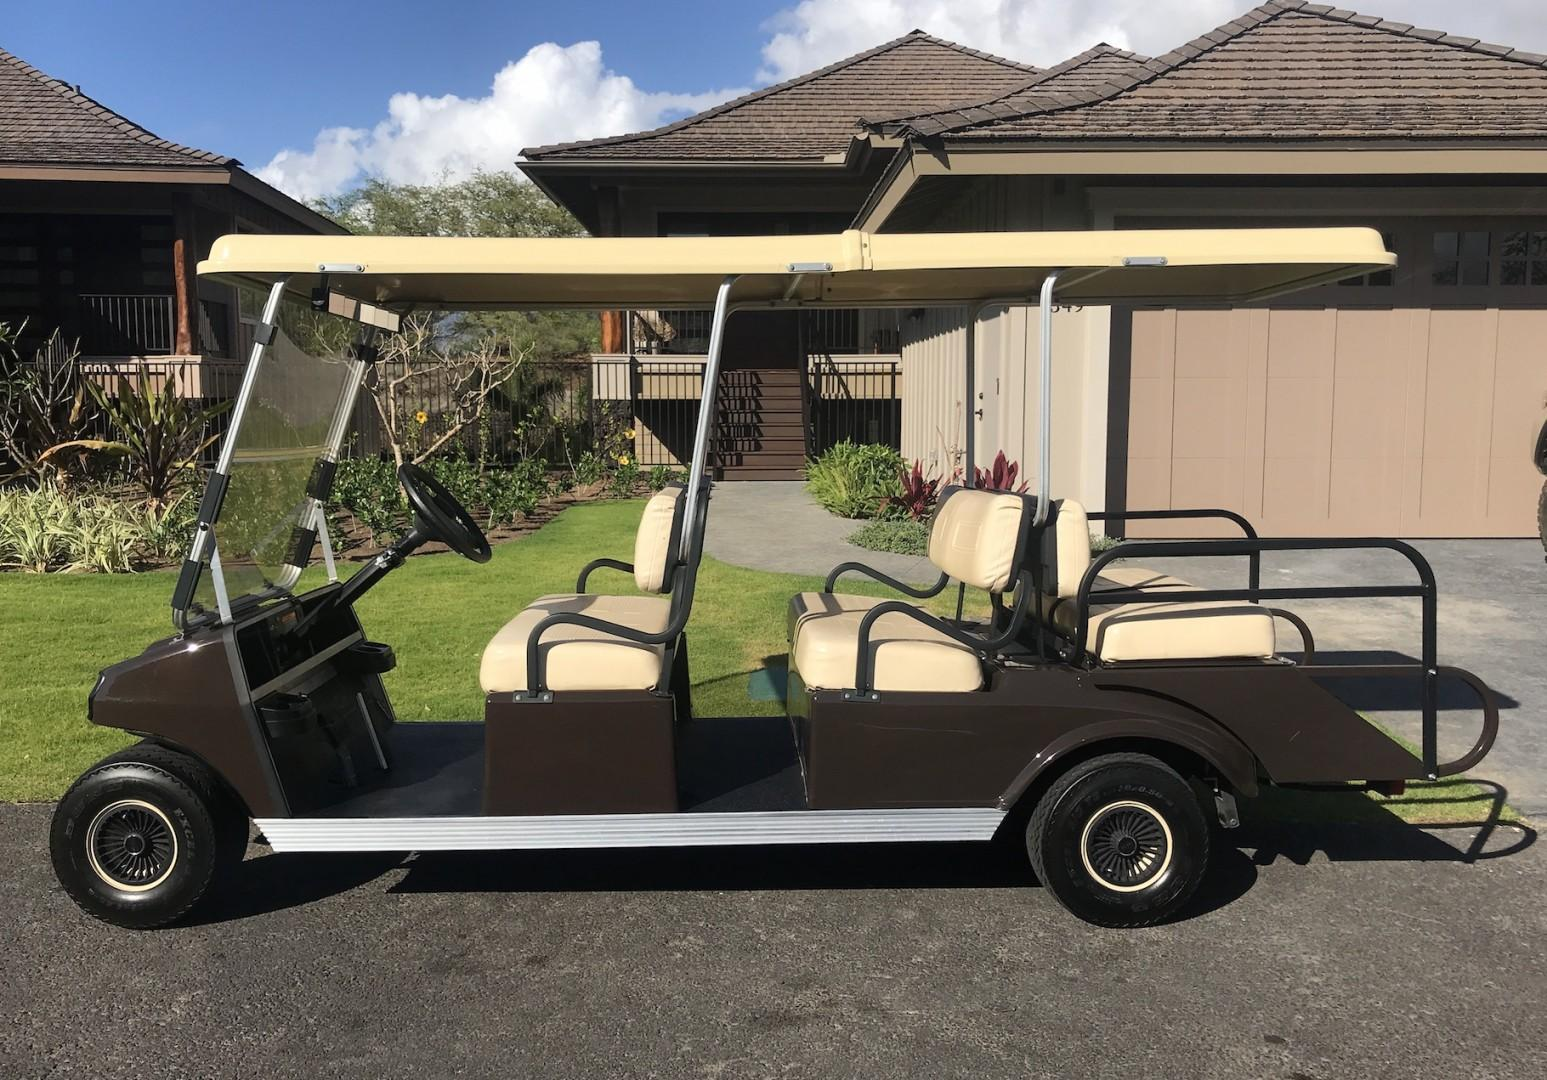 Your rental includes this 6-seater golf cart.